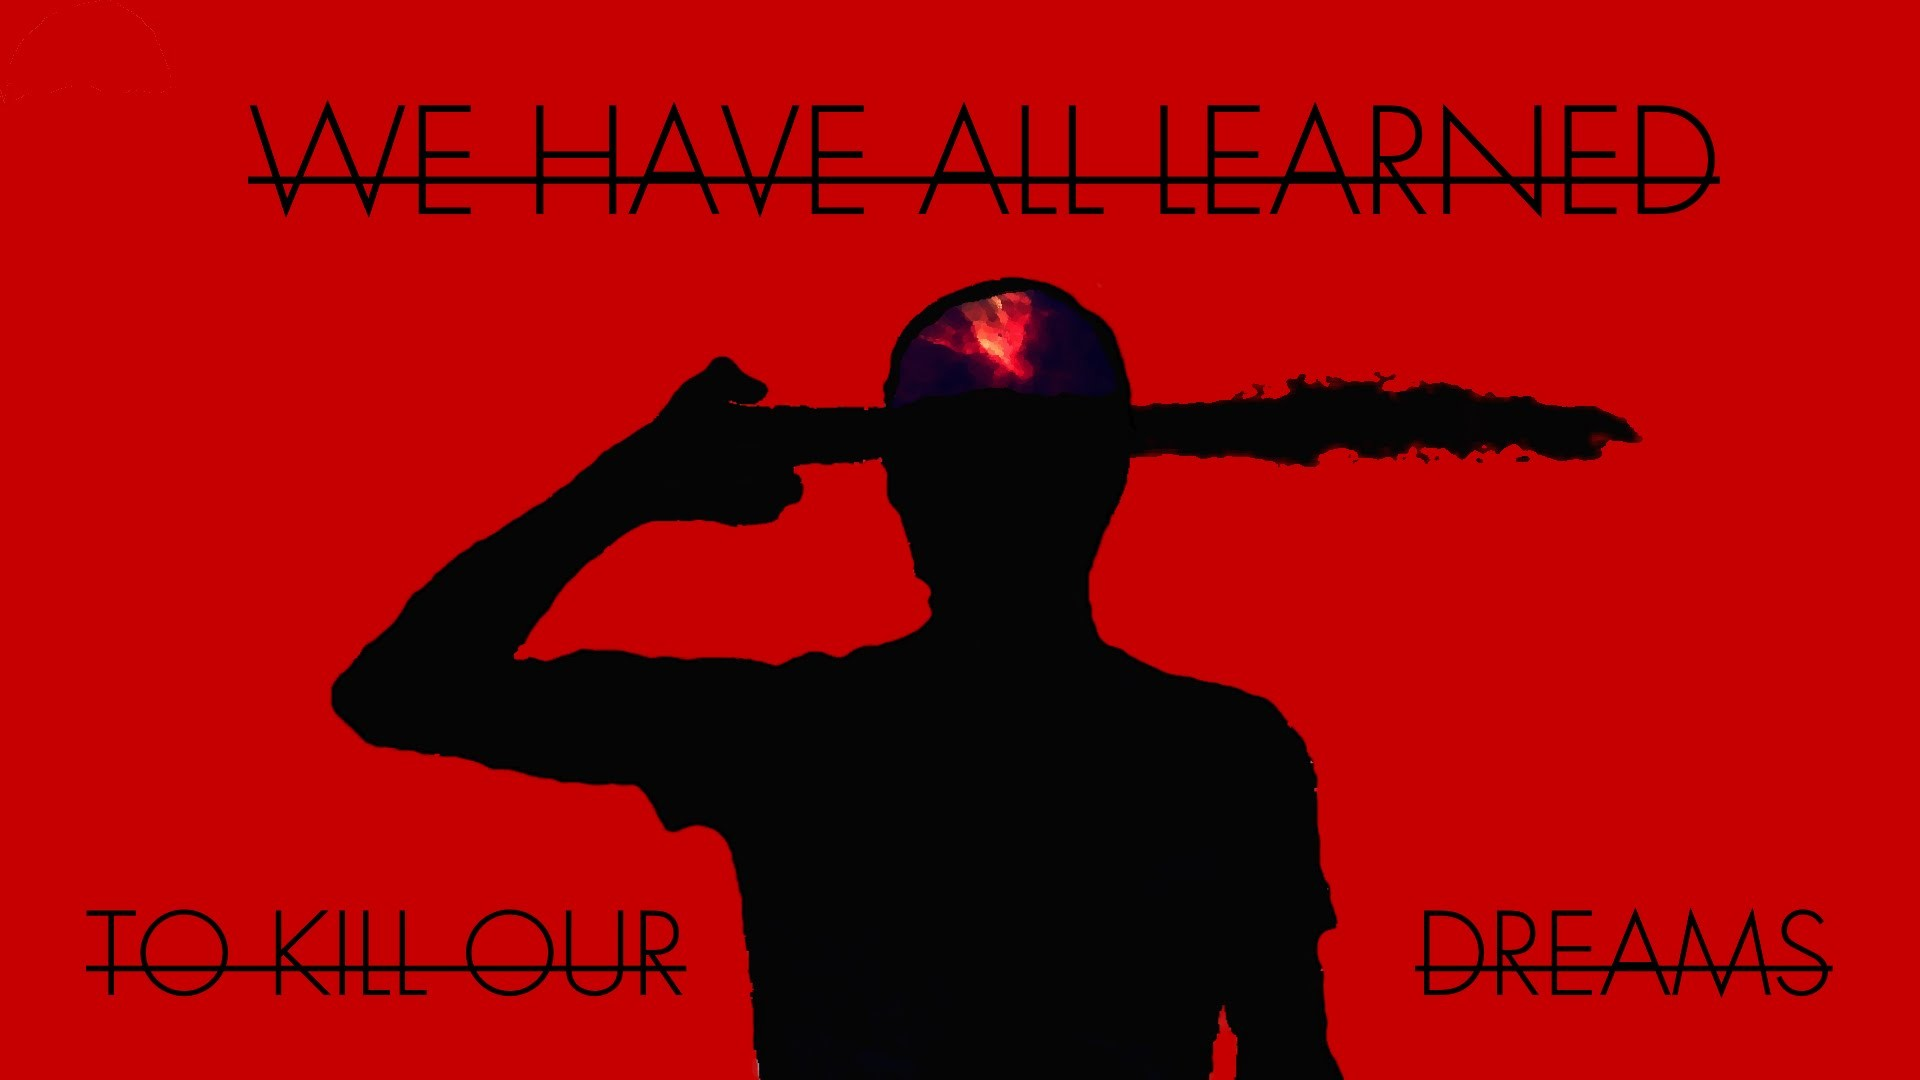 "Twenty One Pilots ""We Have All Learned To Kill Our Dreams""  Wallpaper – YouTube"